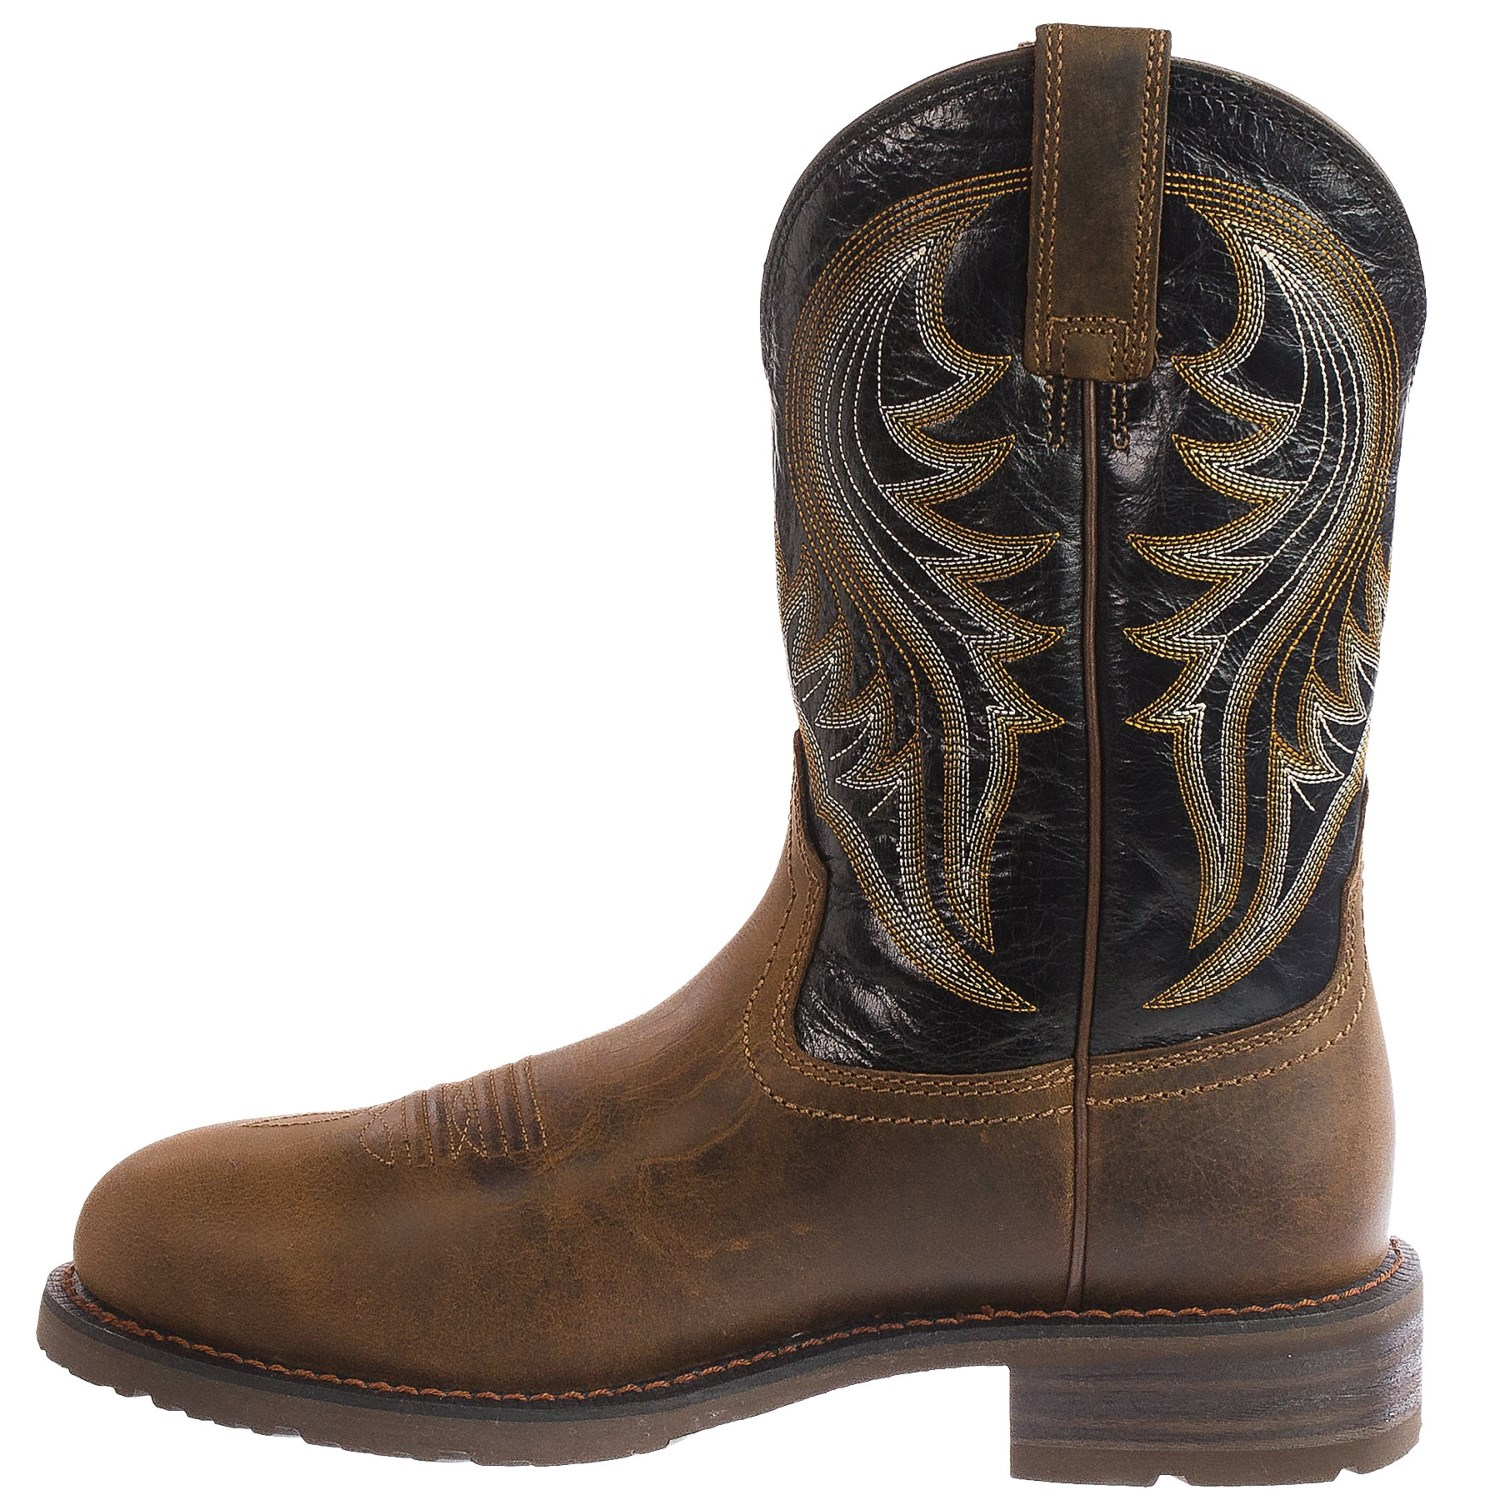 Ariat Work Boots Steel Toe